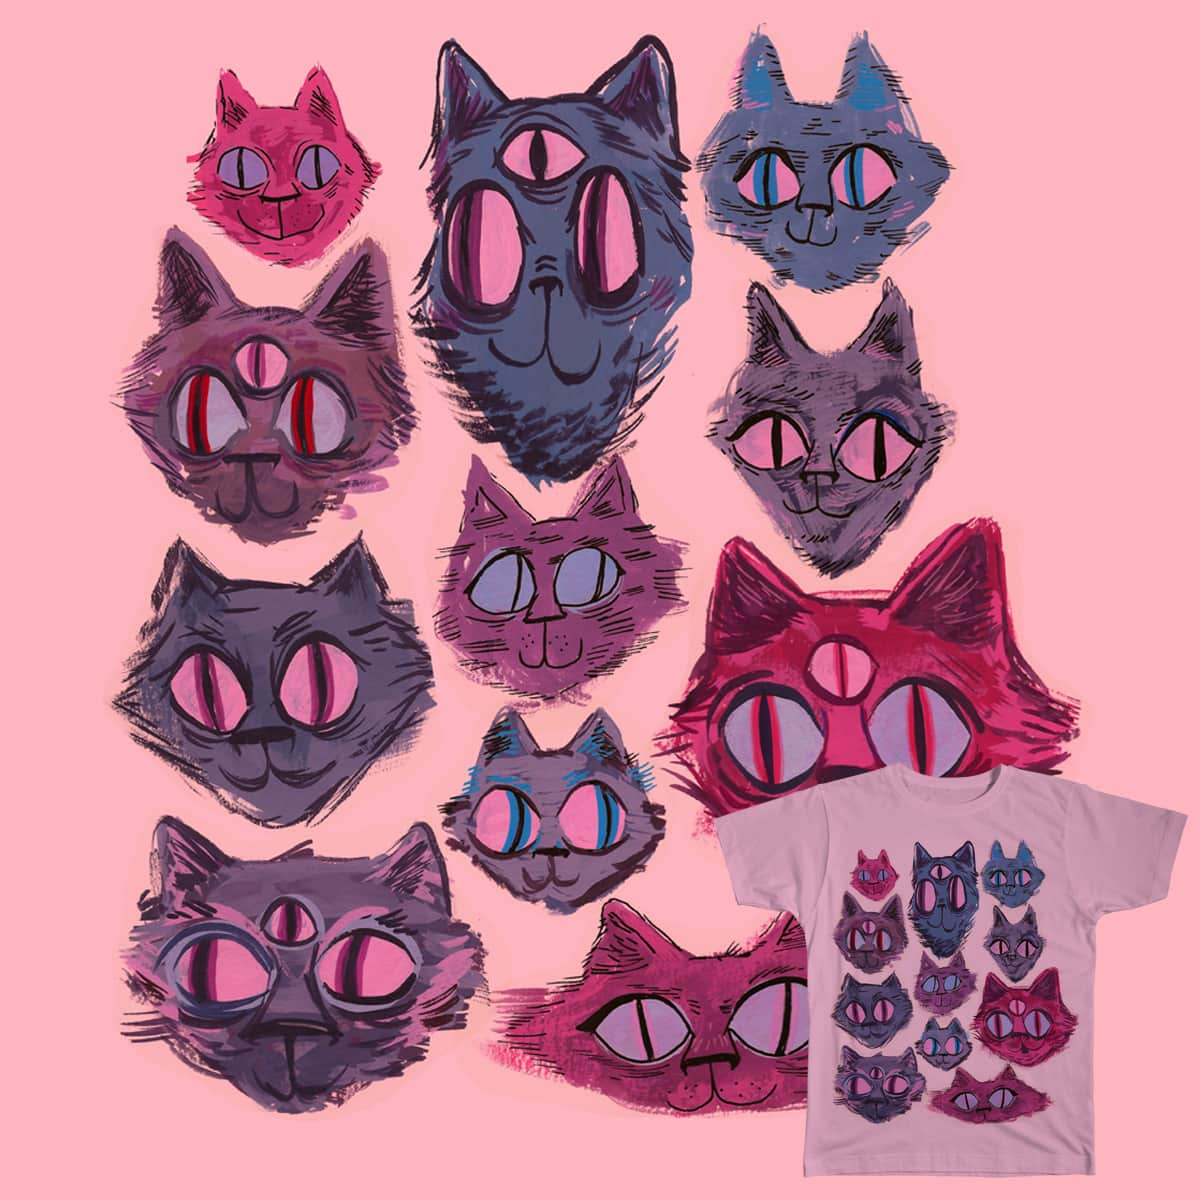 Pass the Catnip  by kristerpelly on Threadless